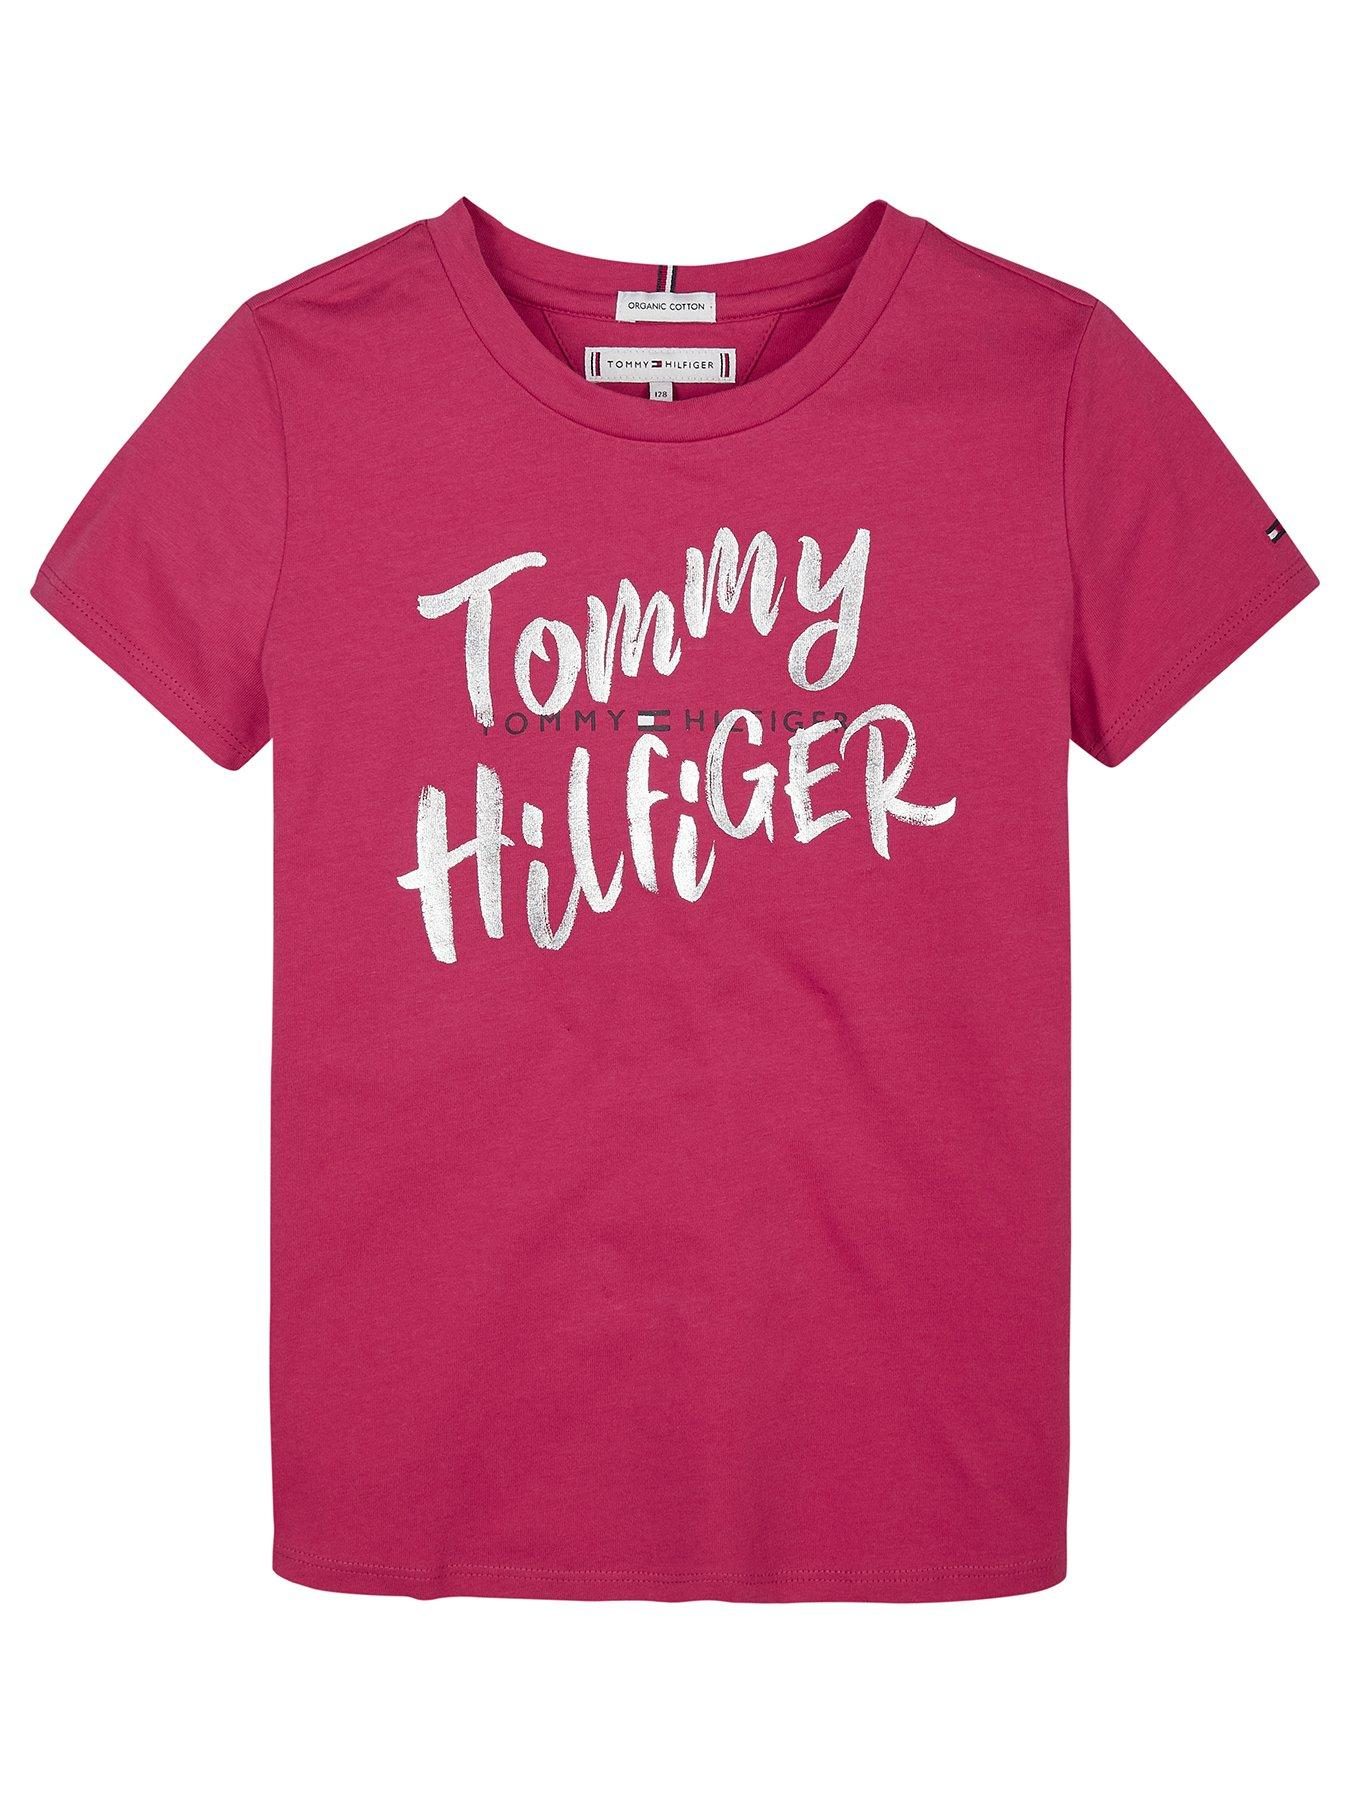 tommy hilfiger t shirt for girls